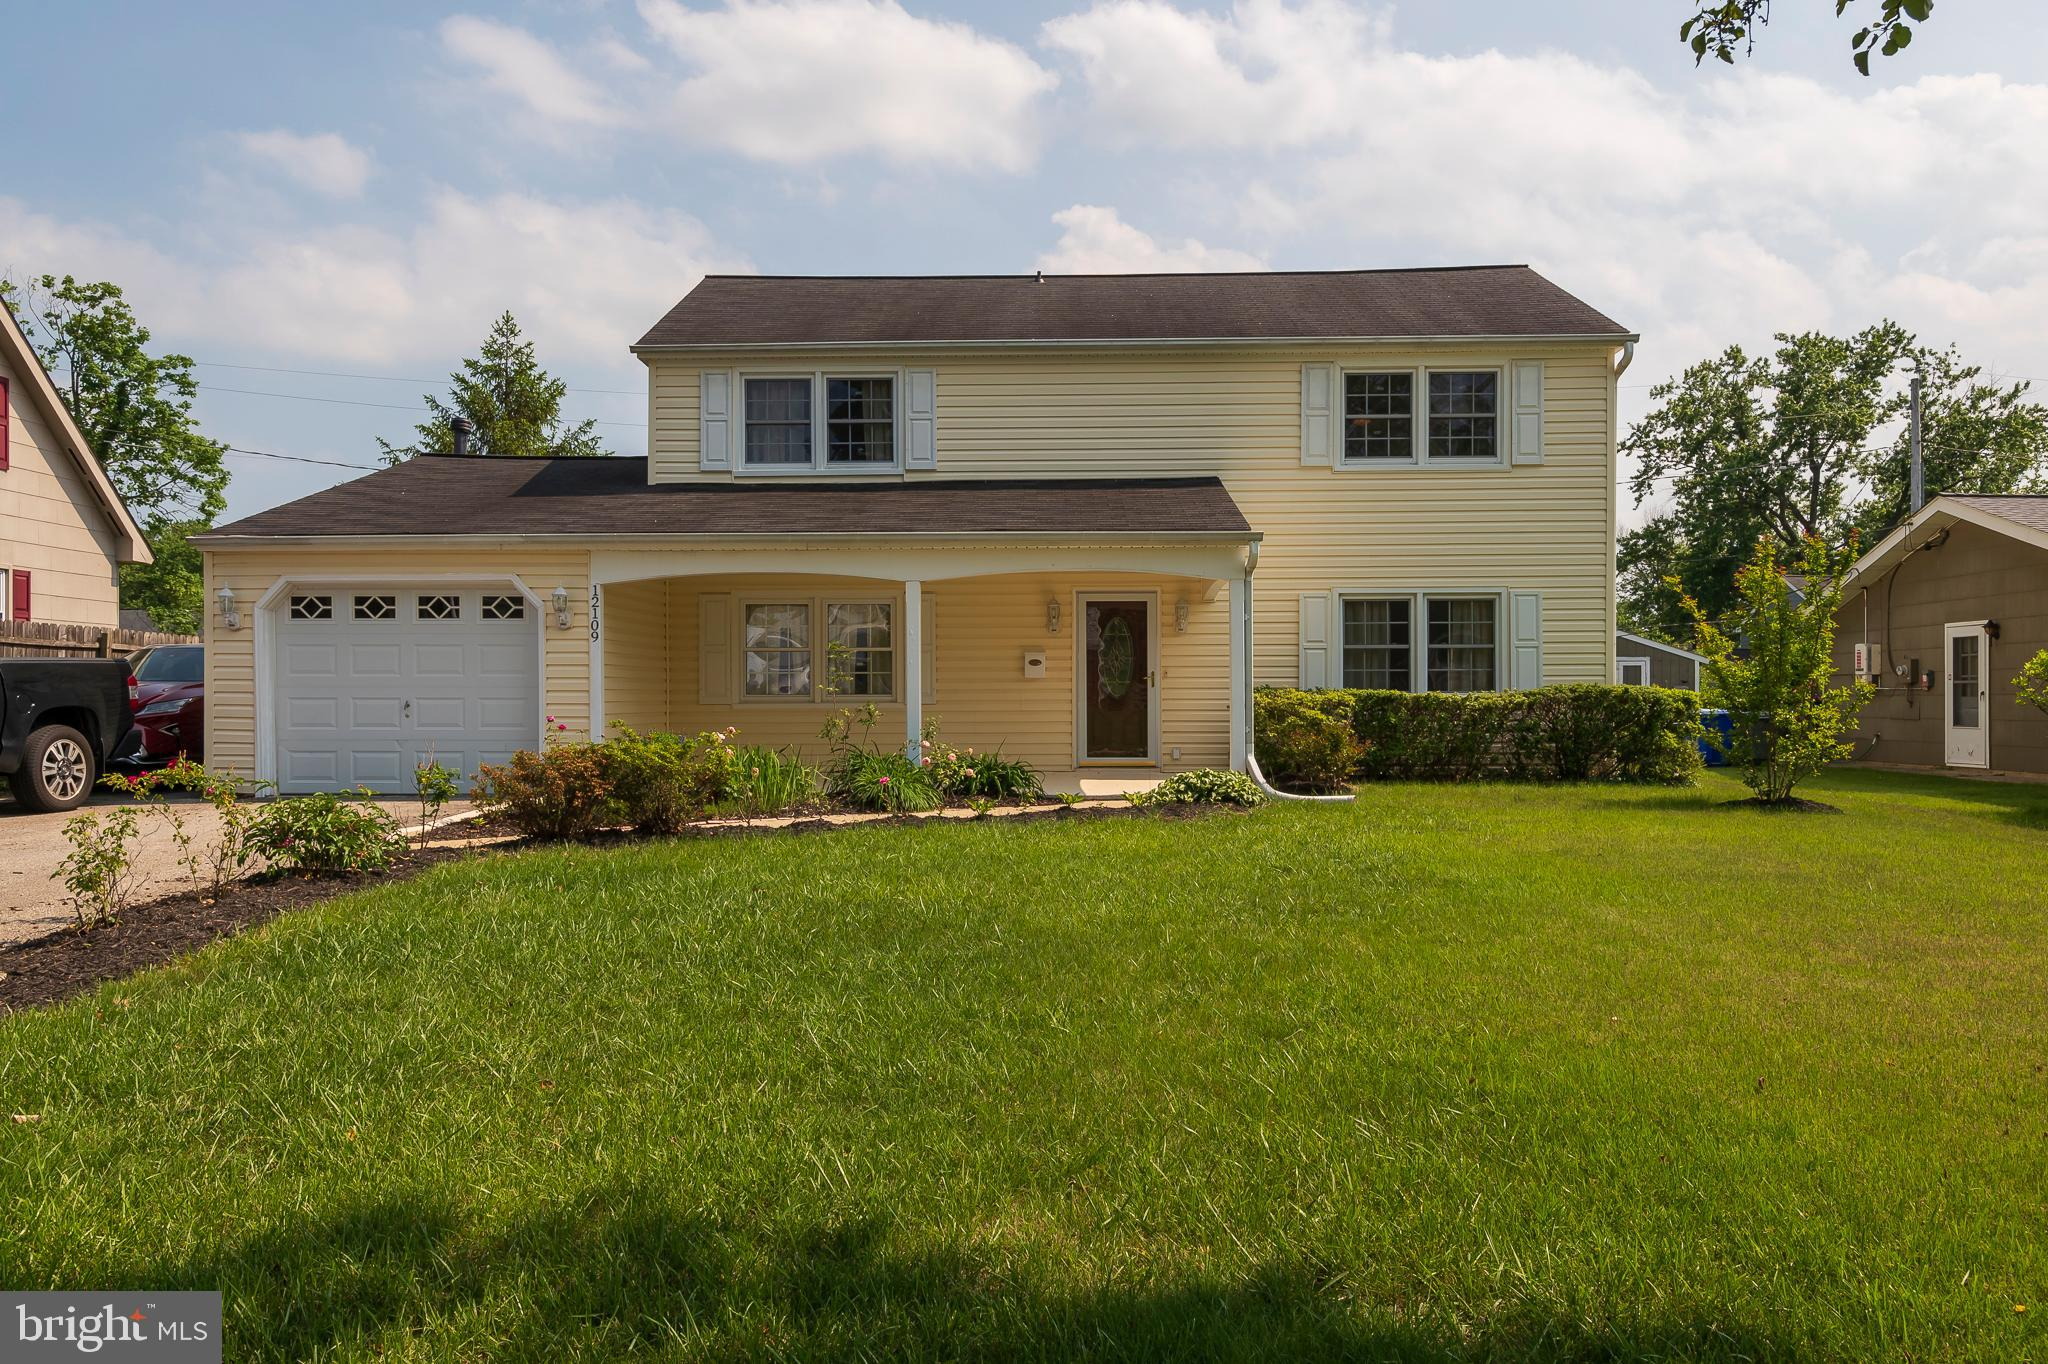 12109 TULIP GROVE DRIVE, BOWIE, MD 20715